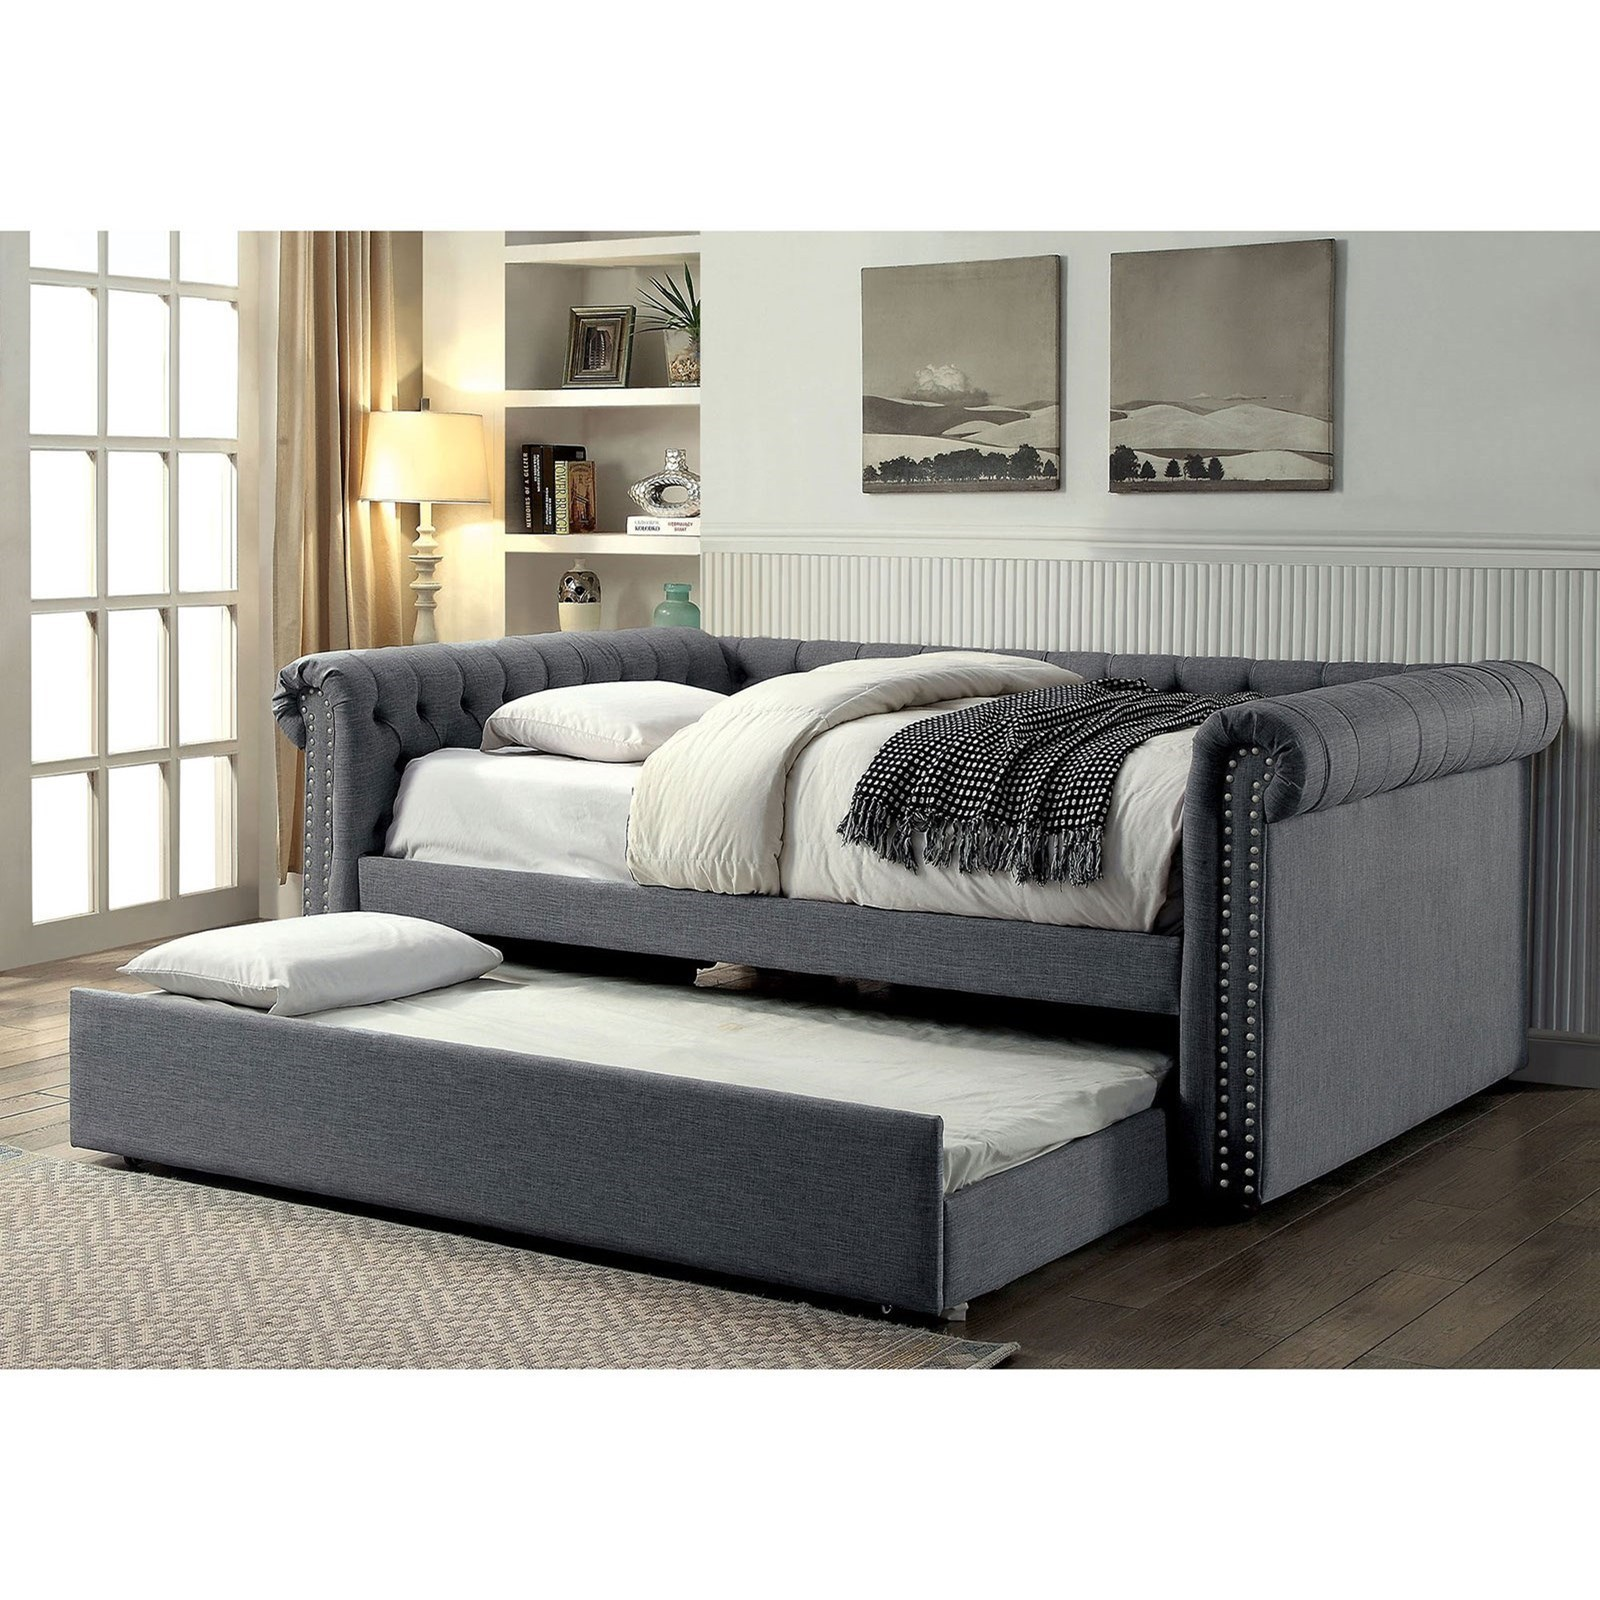 Furniture Of America Leanna Cm1027gy F Bed Transitional Tufted Full Size Daybed With Trundle Corner Furniture Daybeds